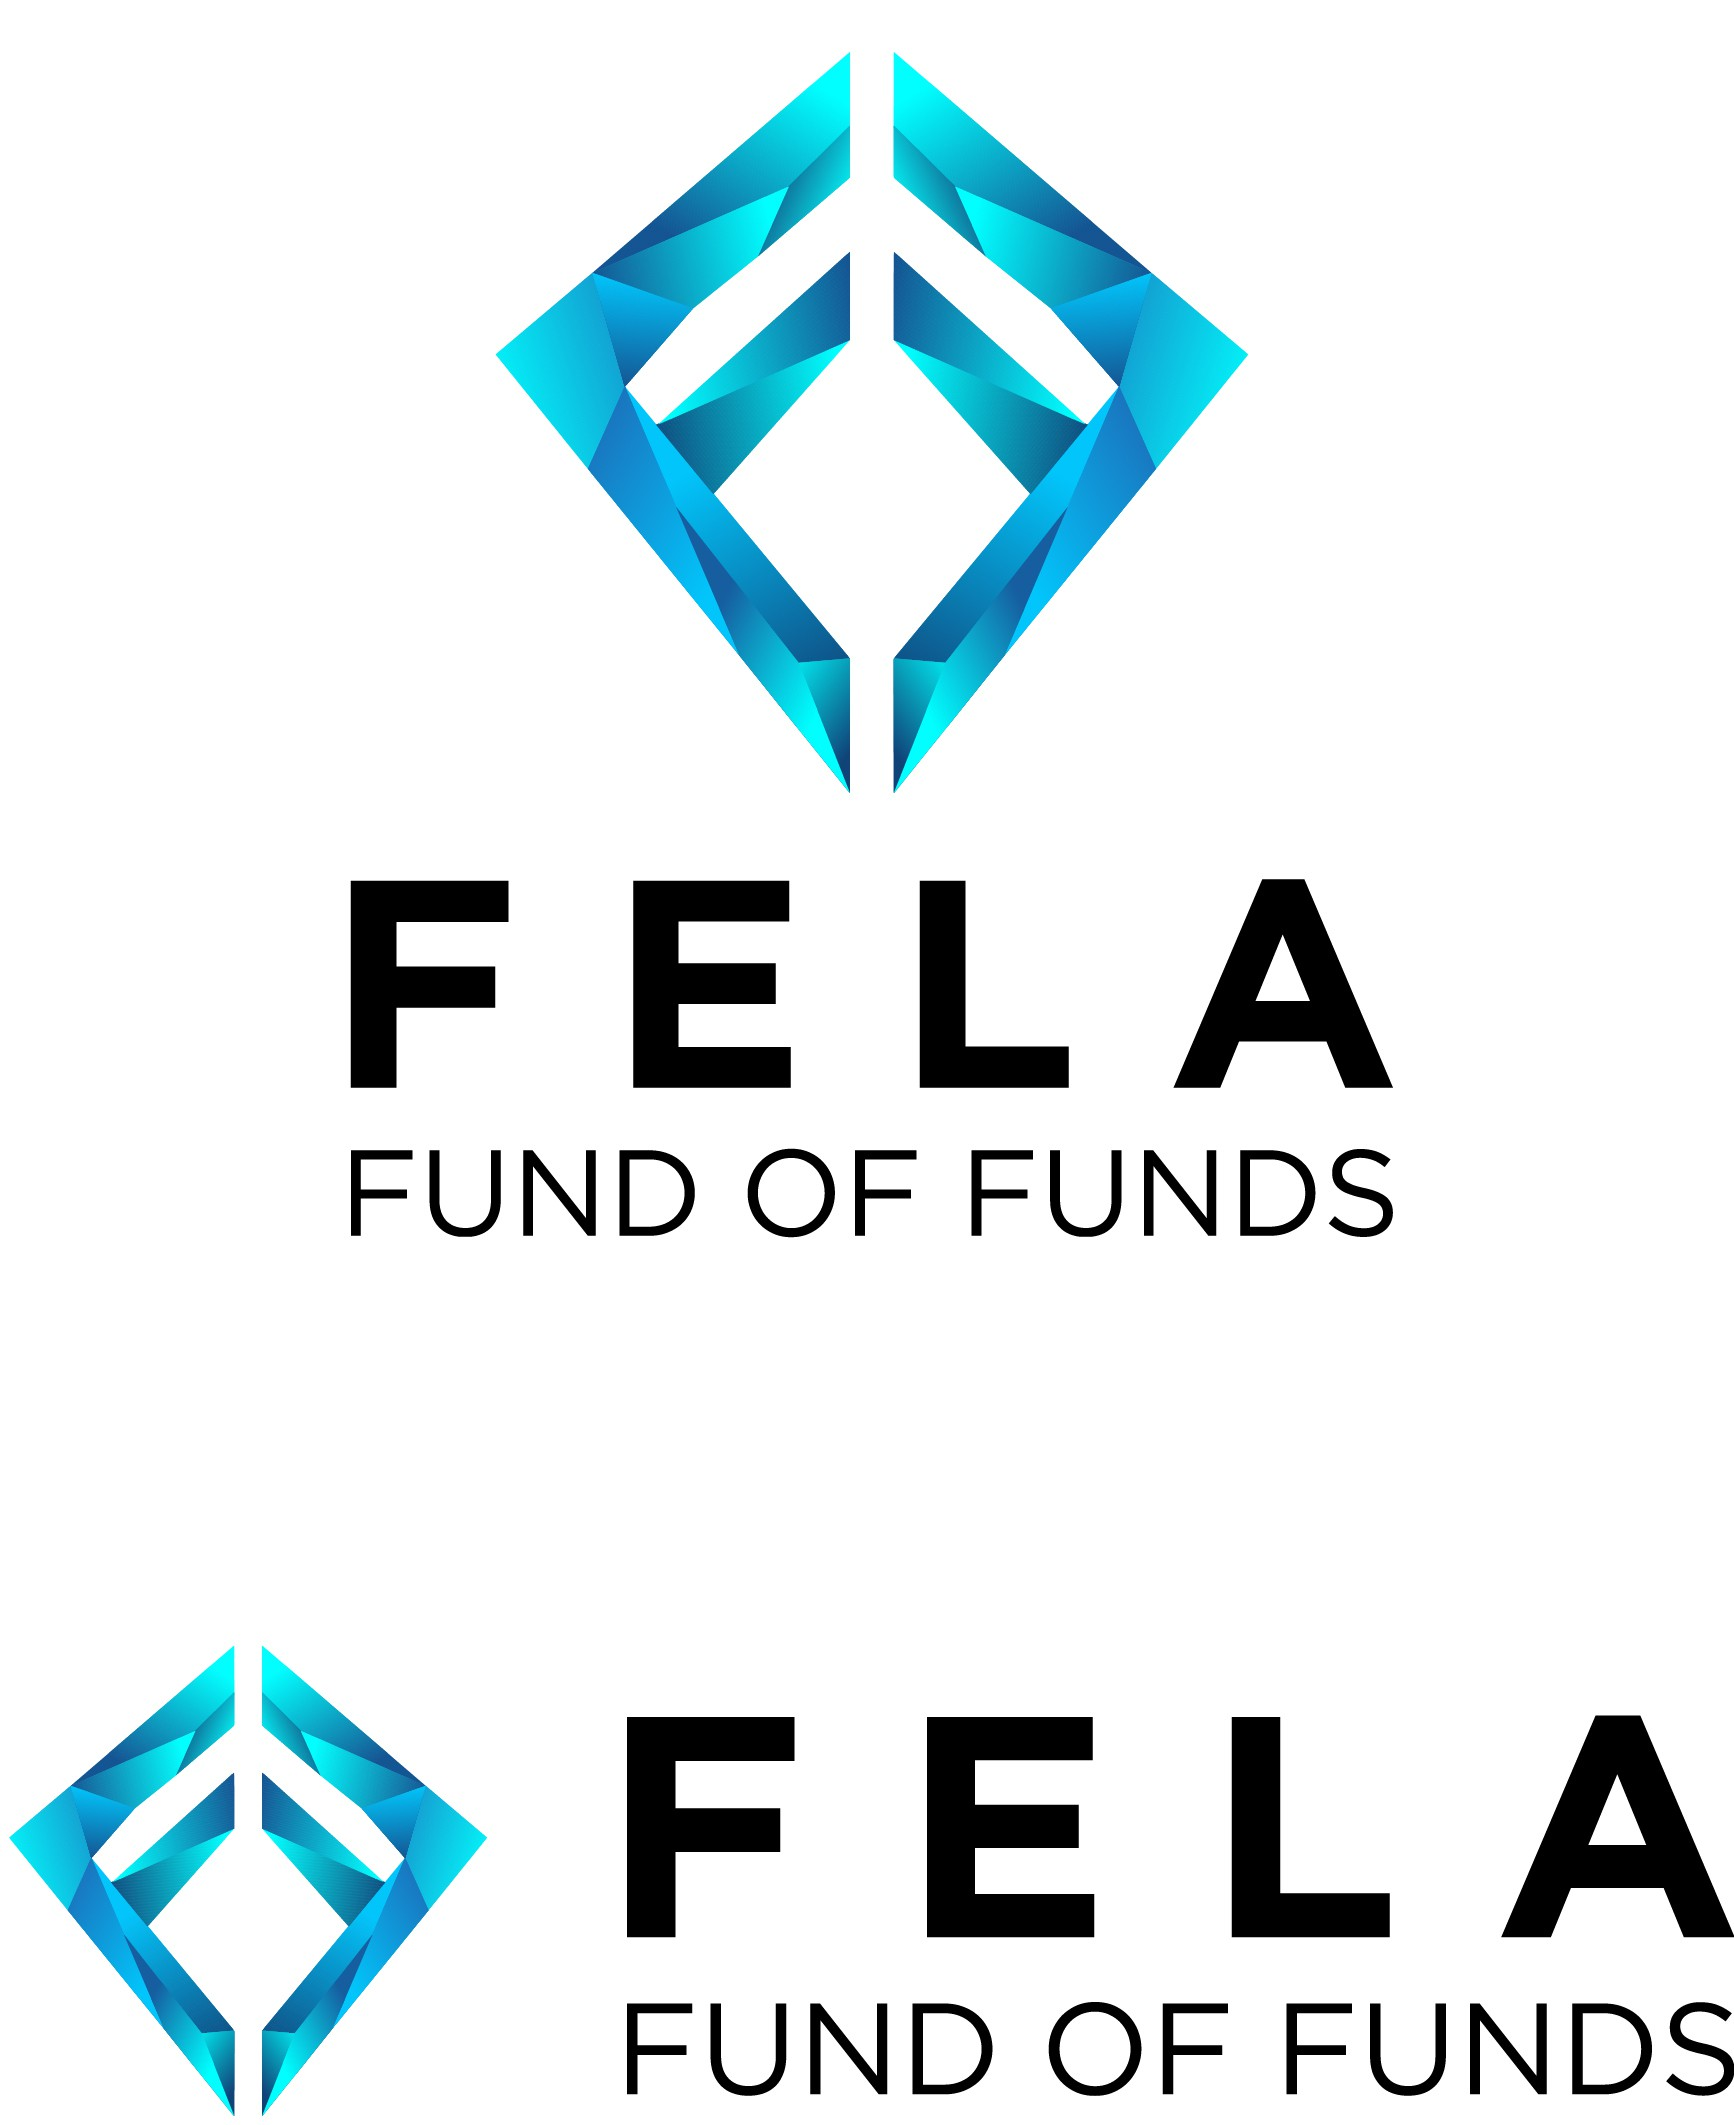 Fund of Funds - Blockchain & Cryptocurrencies